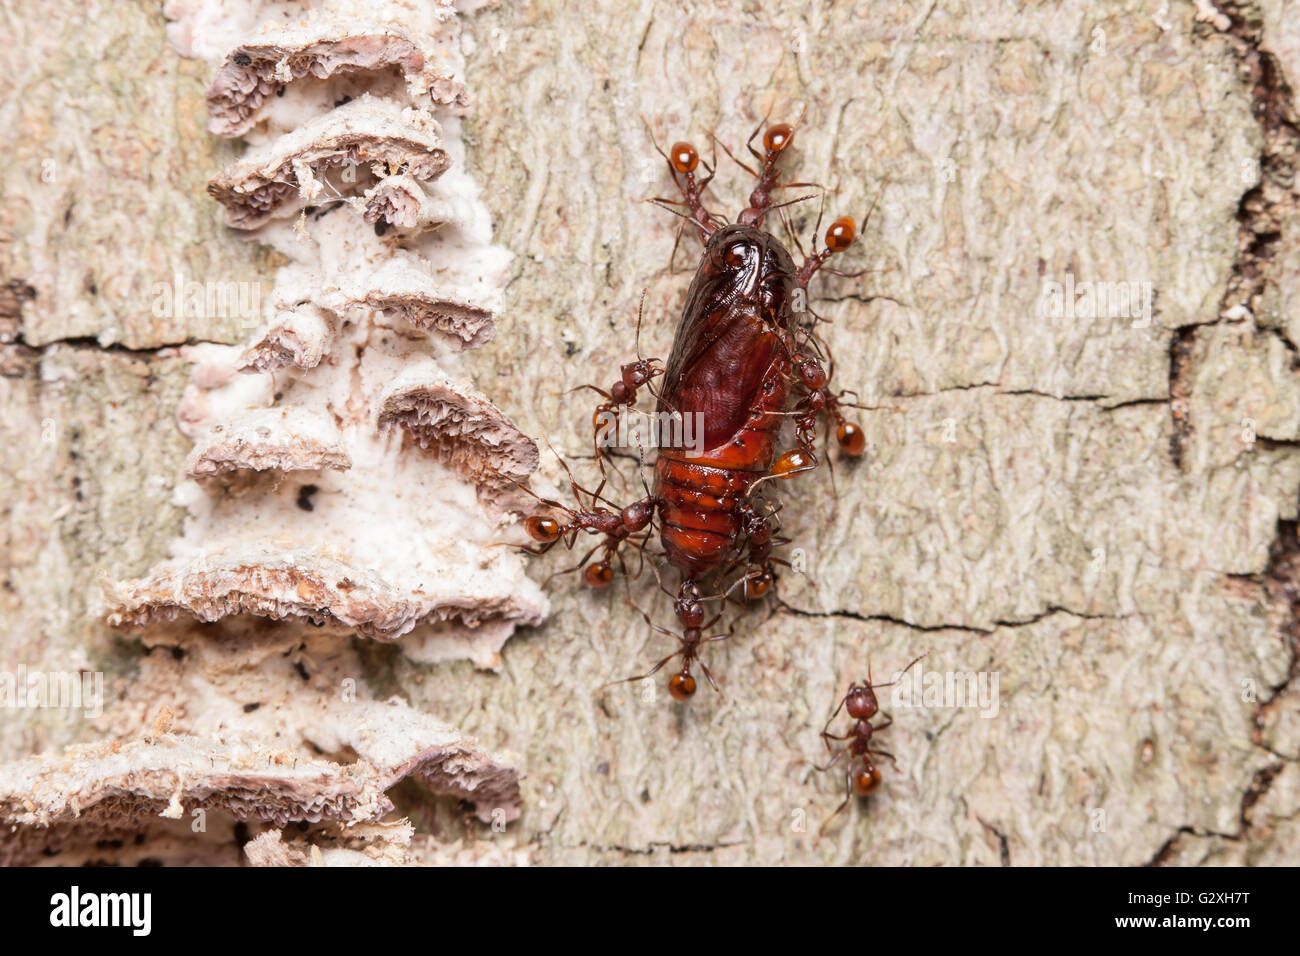 Spine-waisted Ant (Aphaenogaster tennesseensis) workers carry scavenged food, a moth pupa, to their nest in dead - Stock Image